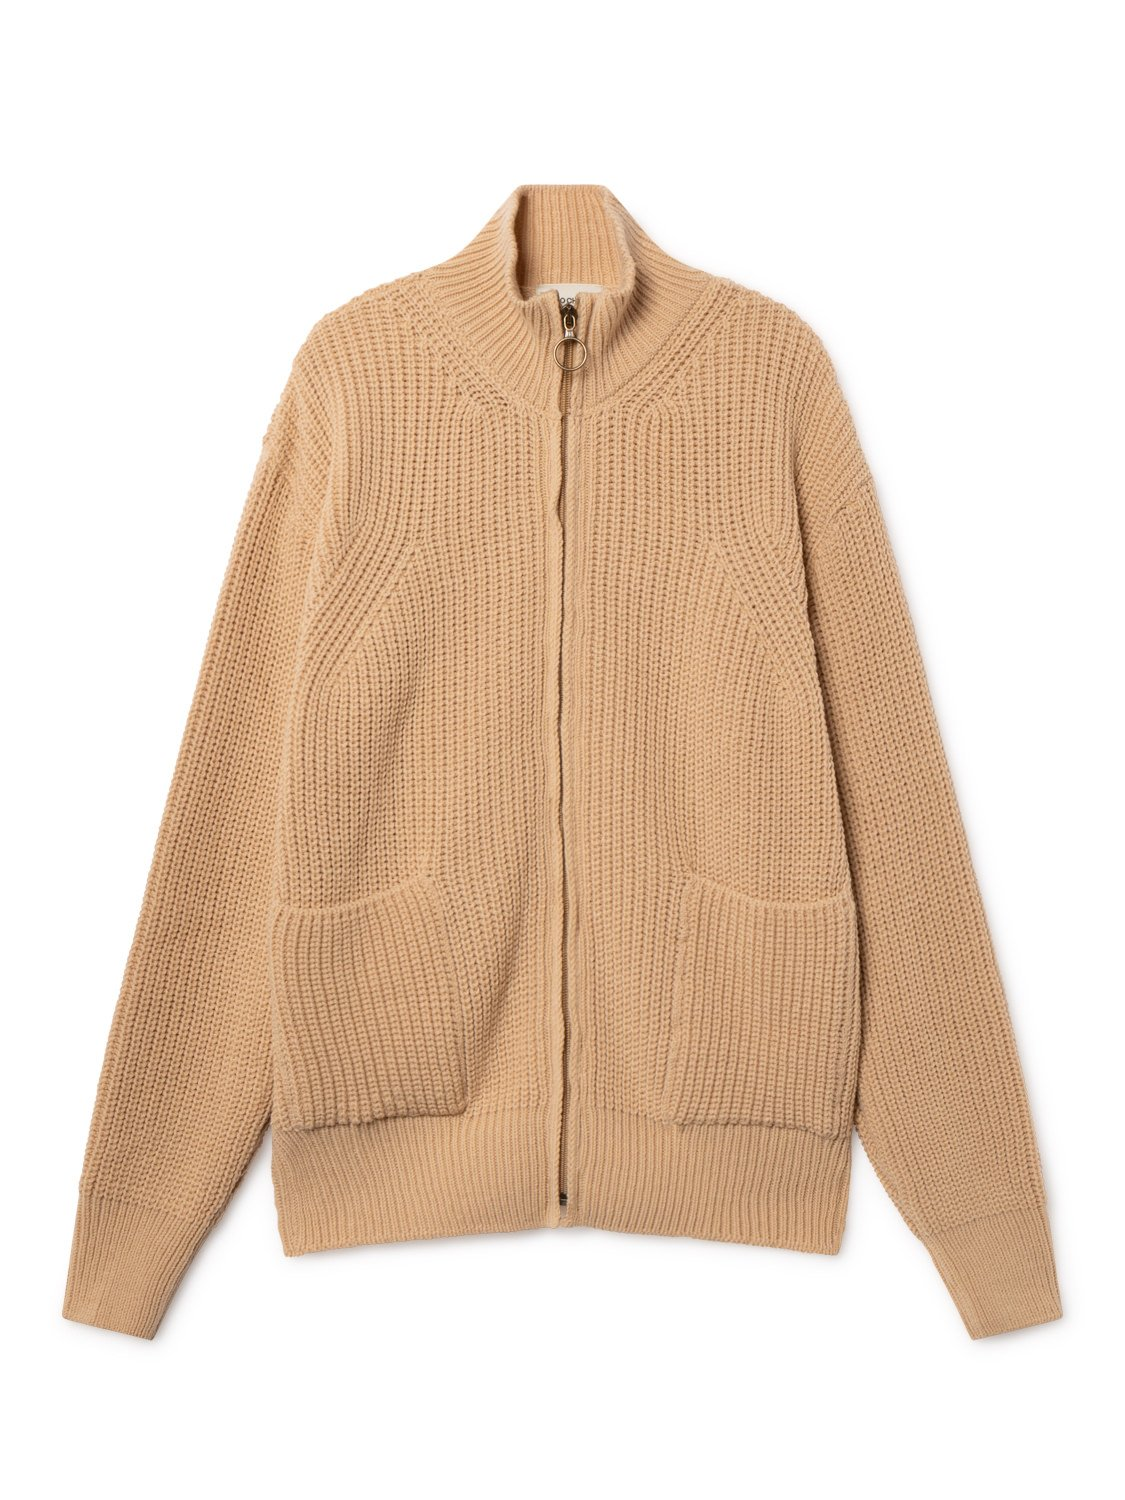 B.C. Knitted Jacket